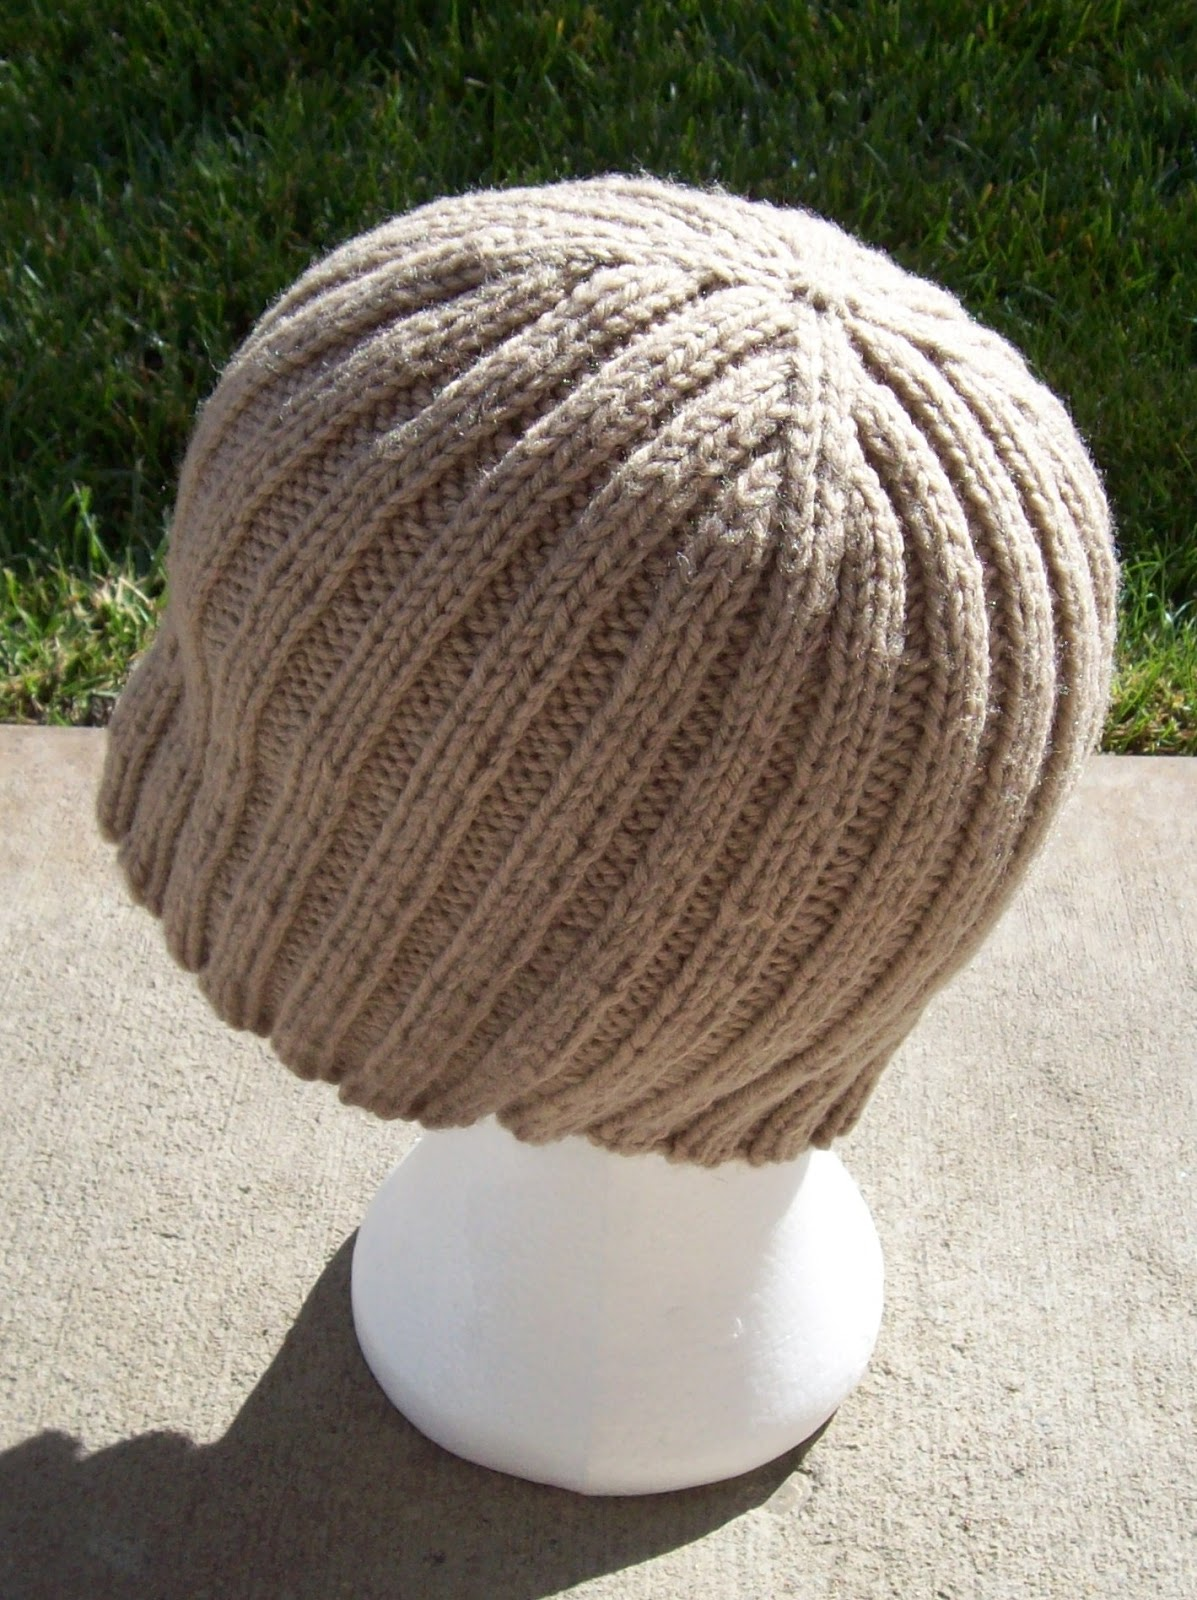 MAKE YOUR RIBBED DOUBLE BRIM HAT. With mm (K) hook. MAKING THE DOUBLE BRIM. RND 1: CH3, FDC 47, join with a slip stitch to top of beginning CH3. Use tail to sew the bottom of the CH3 and last FDC closed to form the first round of the brim.